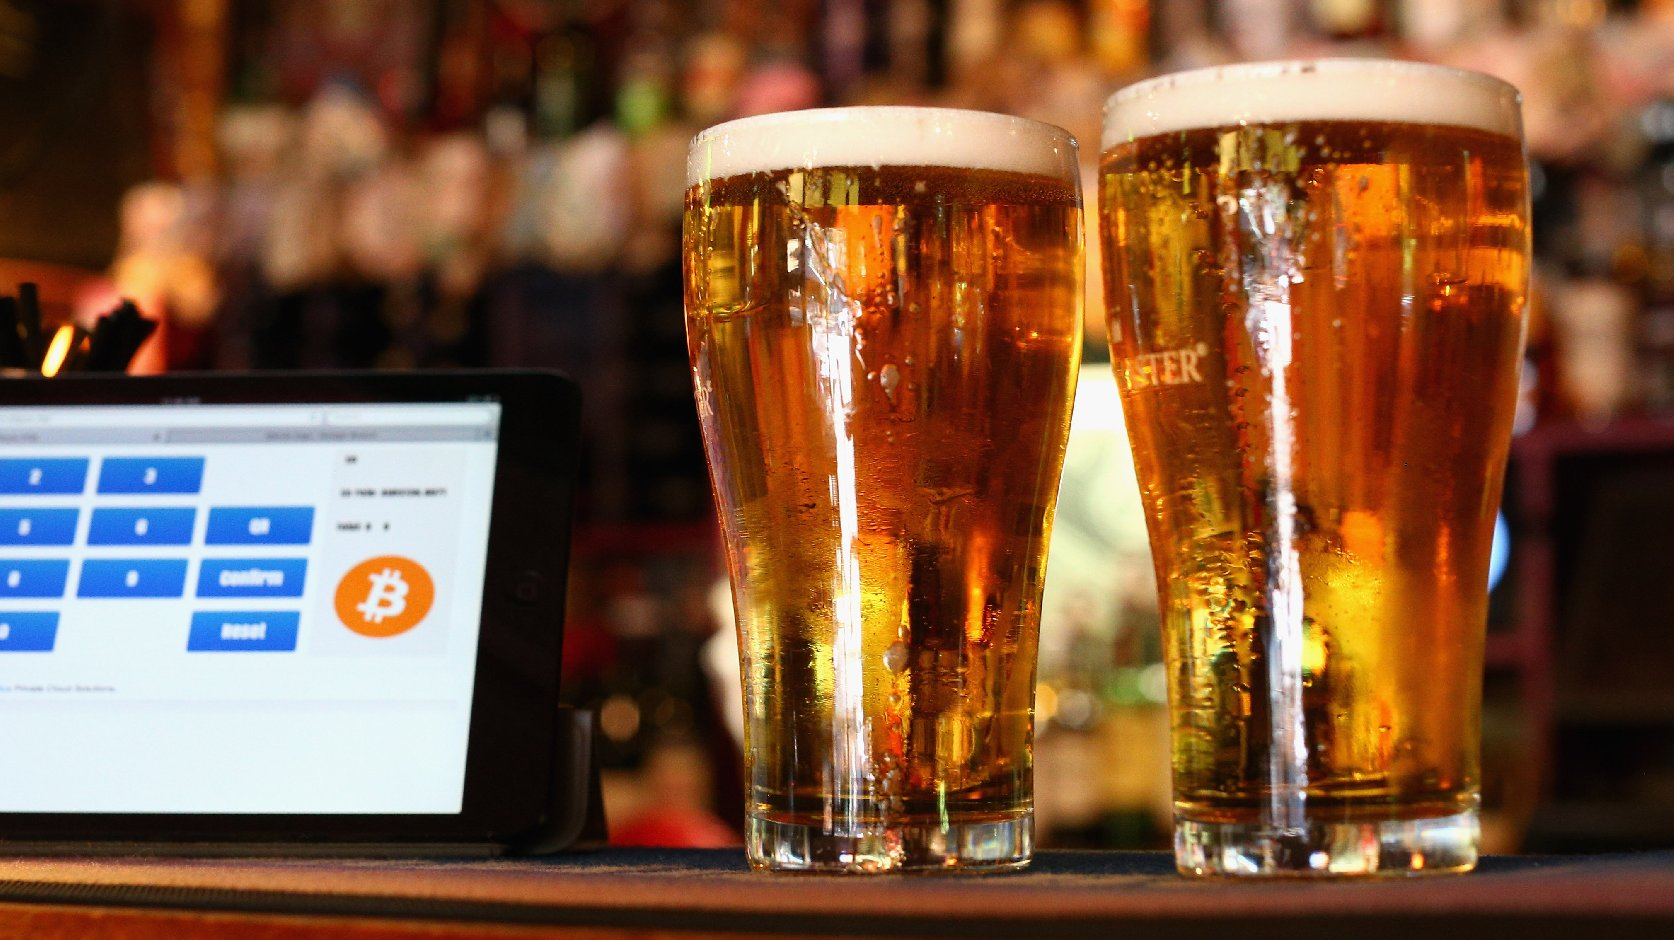 Bitcoin isn't just for shady business — it can also buy you some delicious goodness. The Old Fitzroy pub in Sydney, Australia, is one of many food and drink businesses beginning to accept Bitcoin as a valid method of payment. Photo: Cameron Spencer/Getty Images